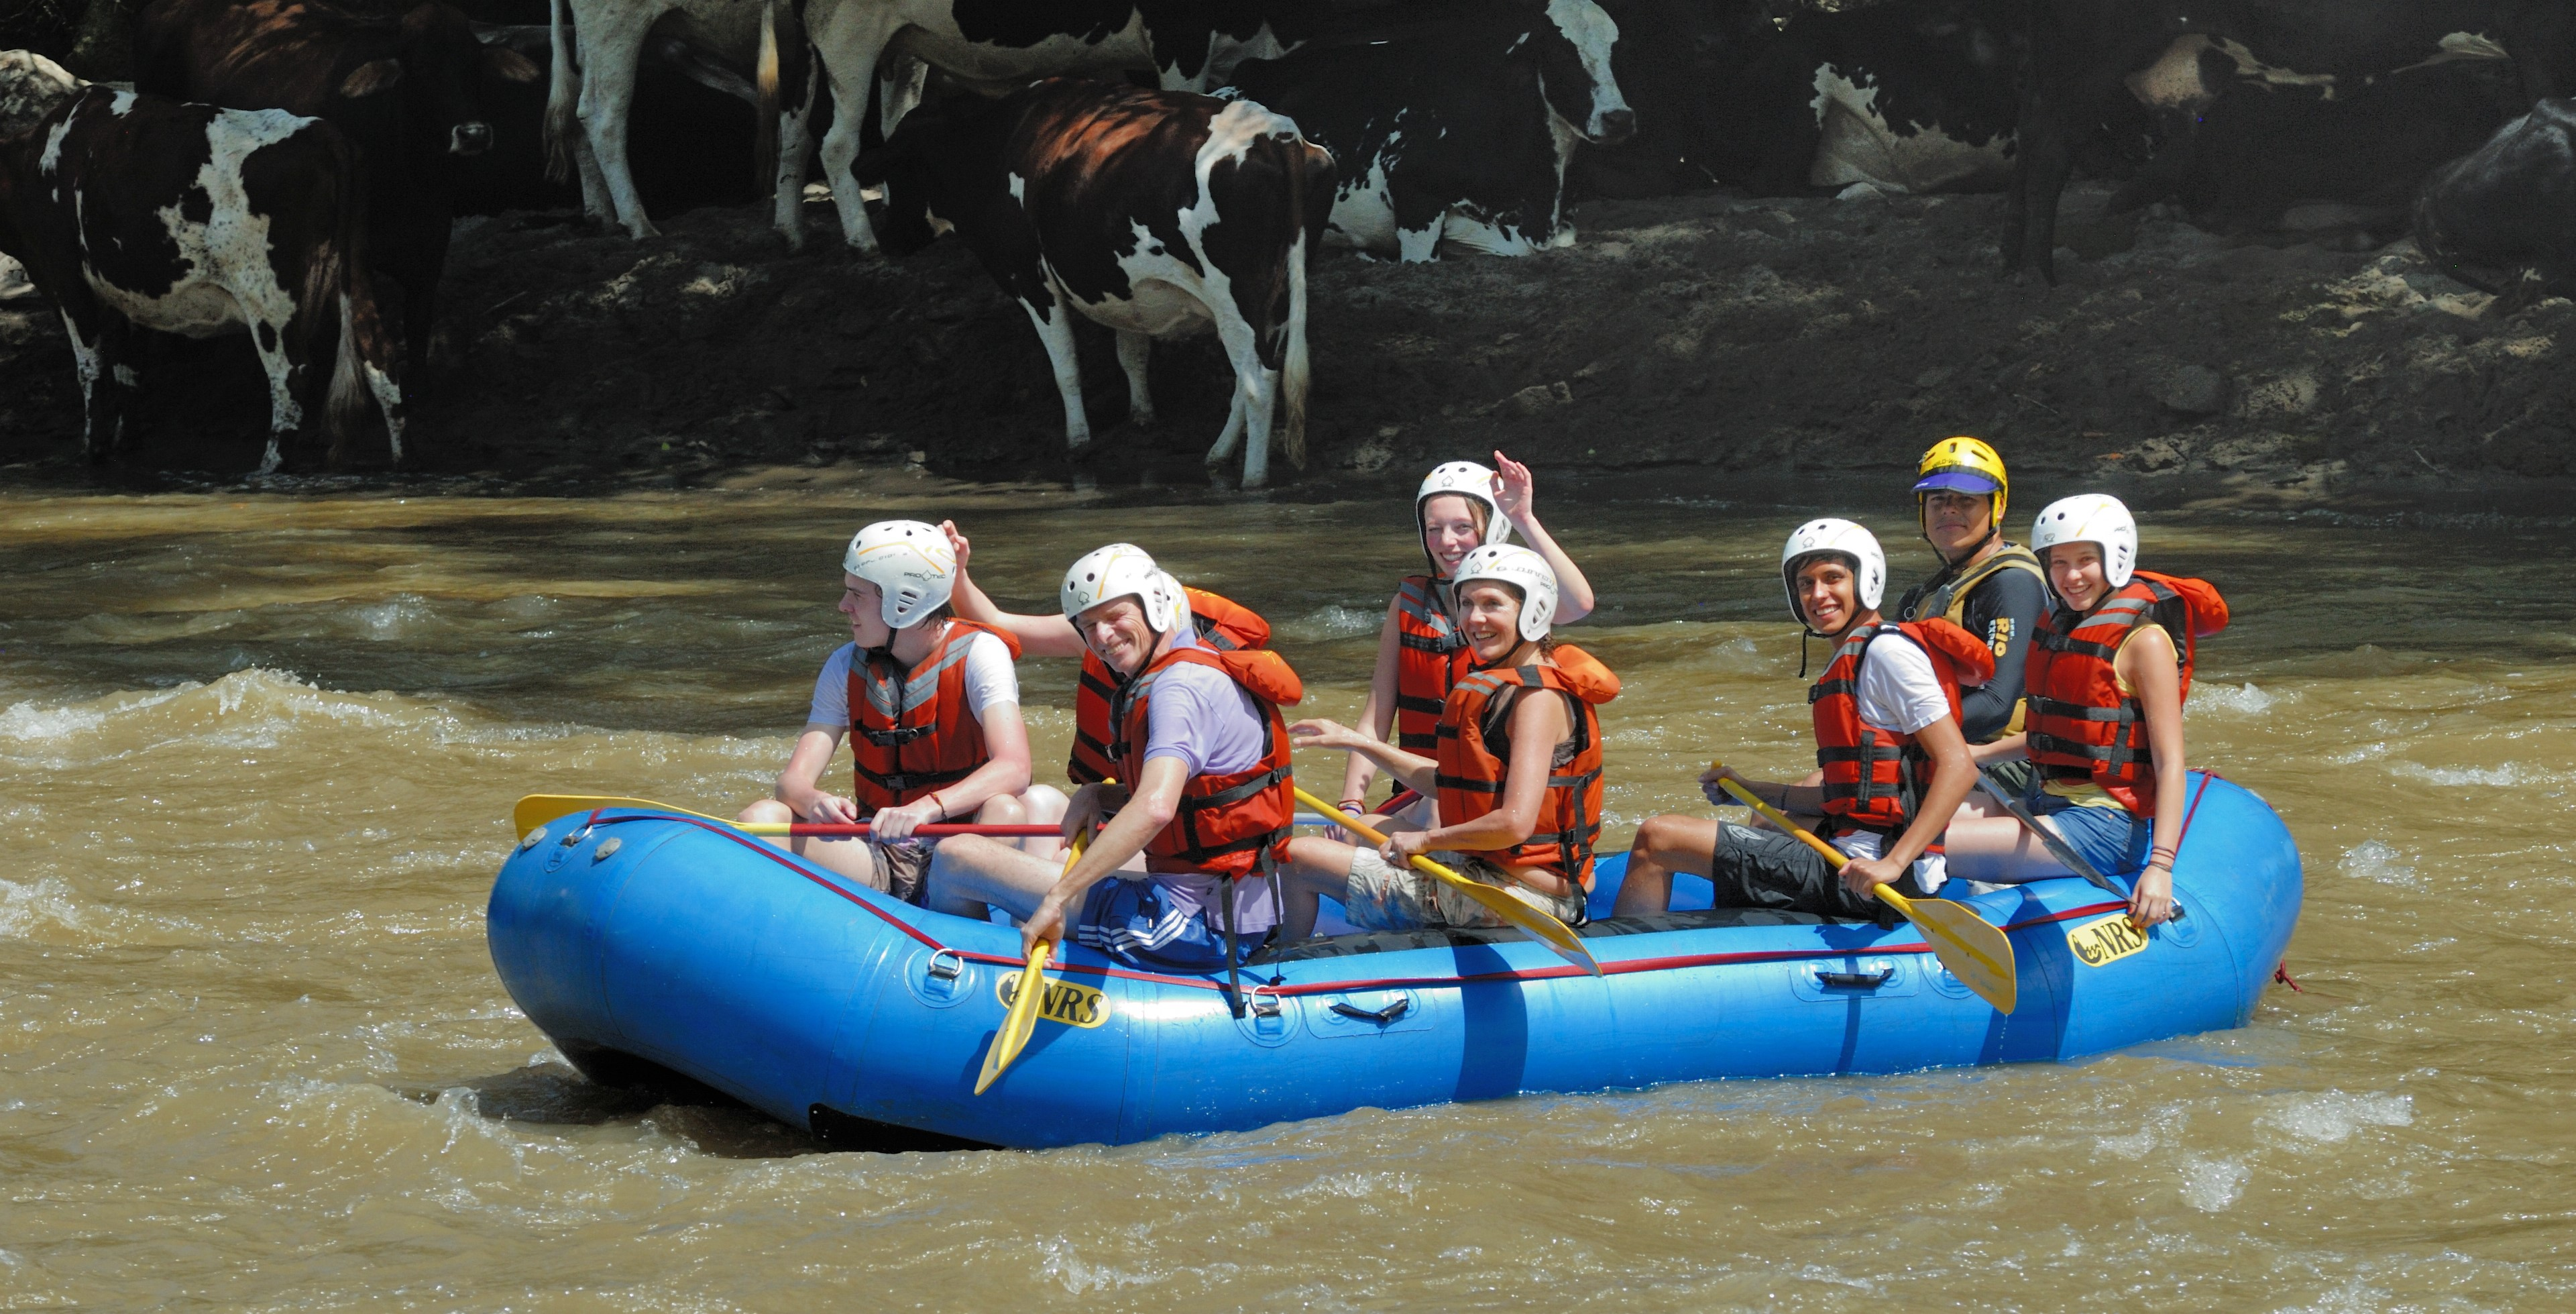 https://www.kontour-travel.com/wp-content/uploads/san-gil-rafting-006.jpg